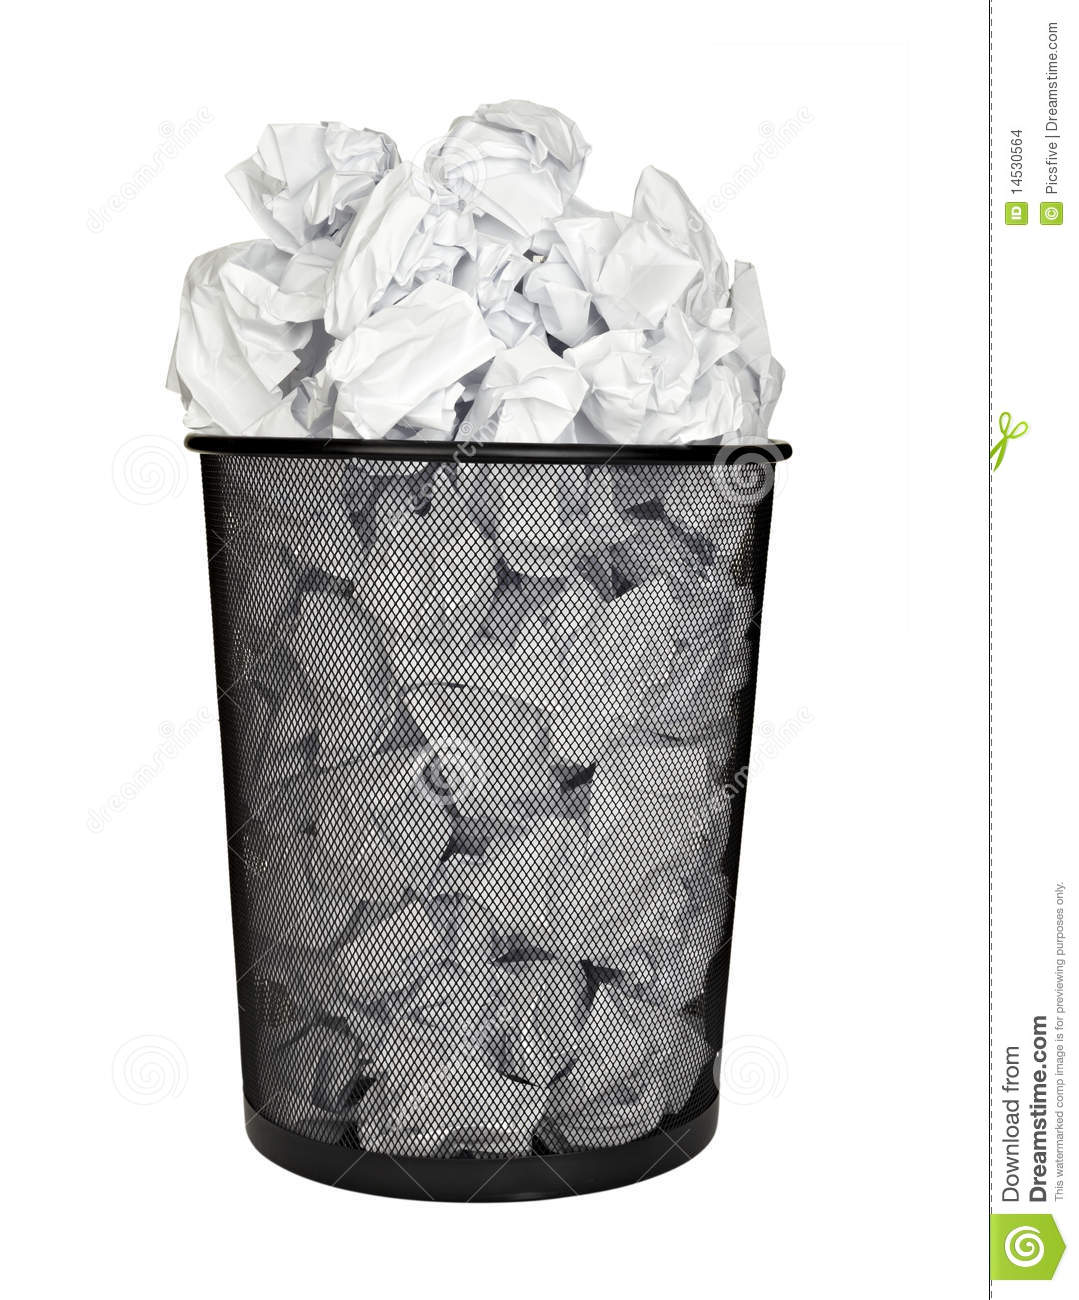 Paper Ball Waste Paper Bin Office Business Stock Images.